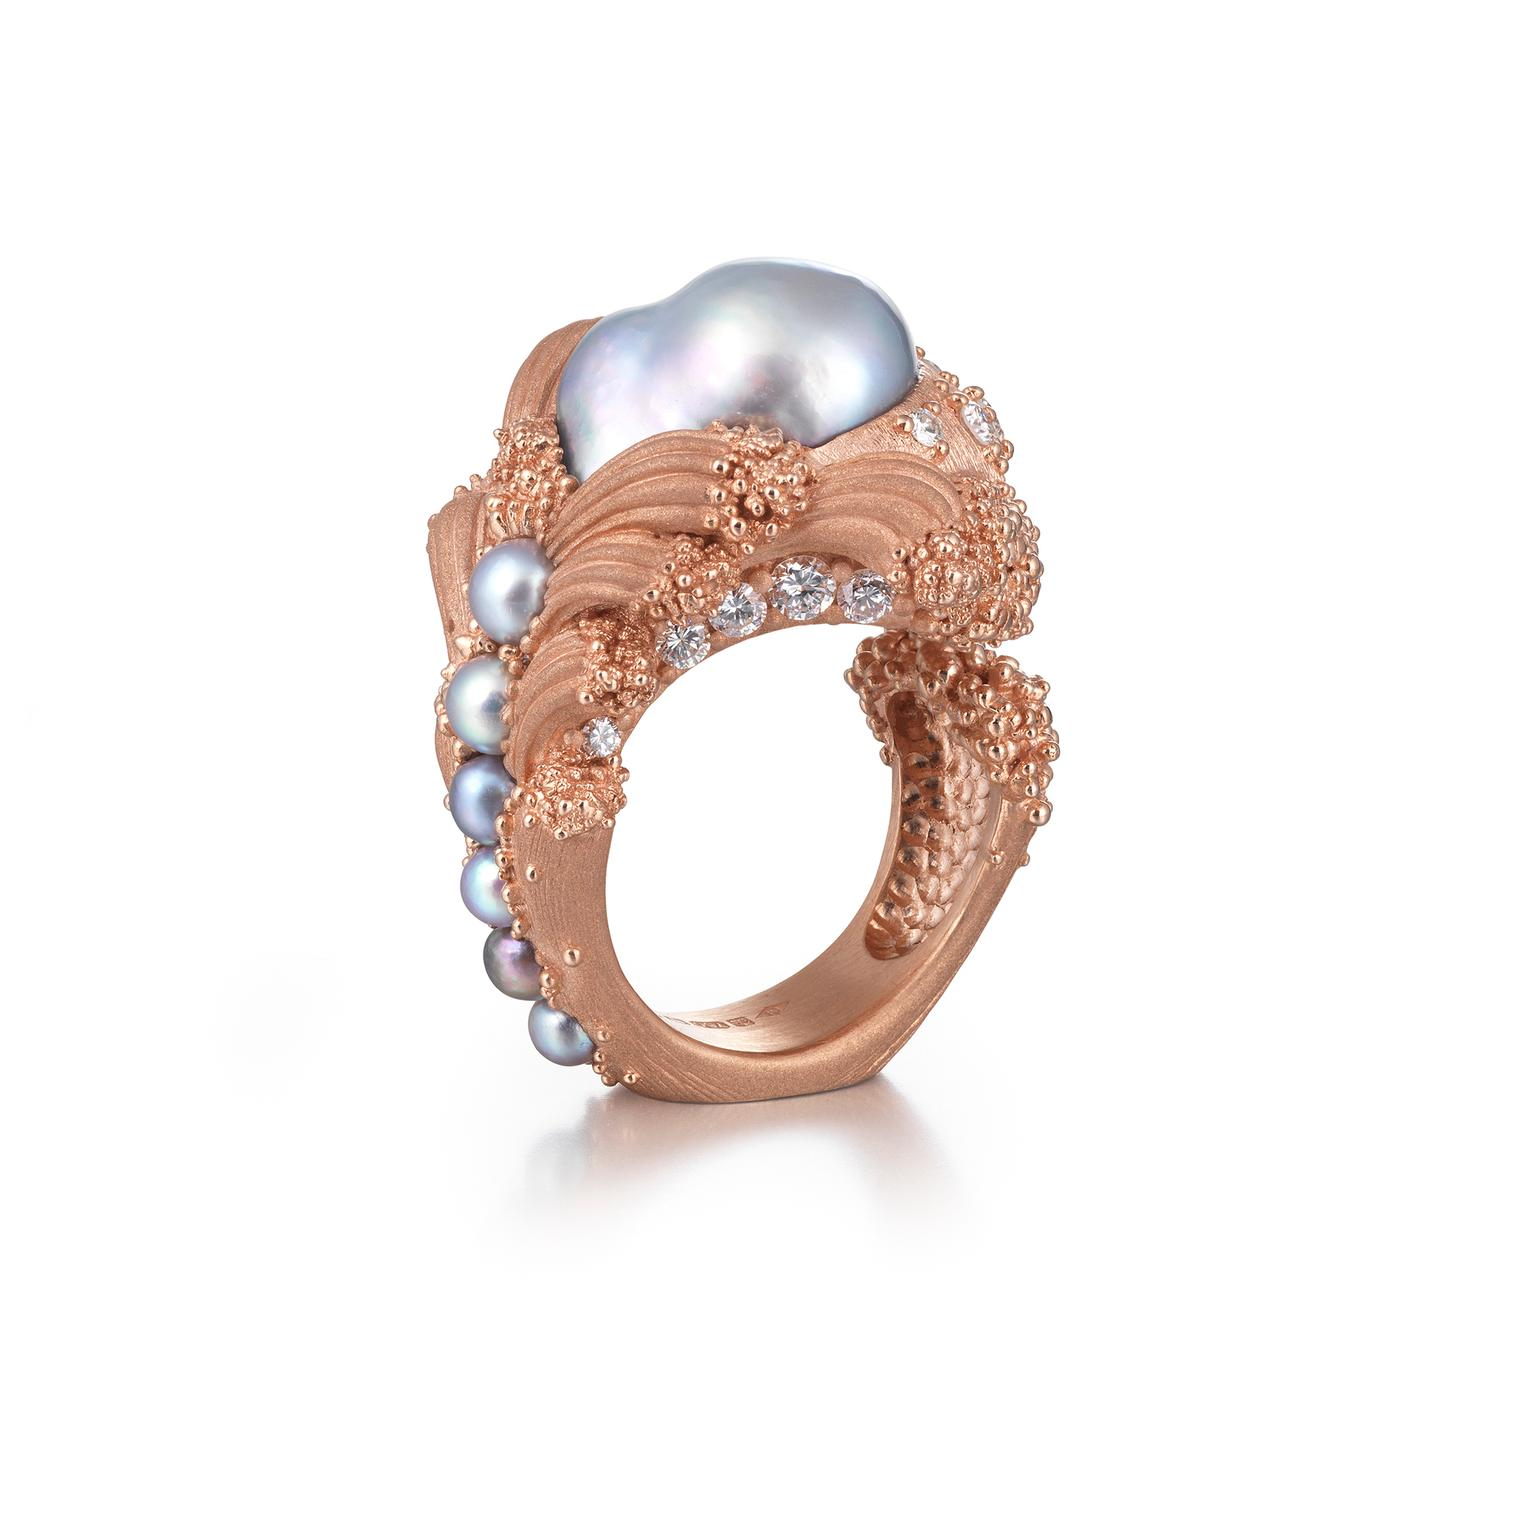 Ornella Iannuzzi The Uprising pearl ring